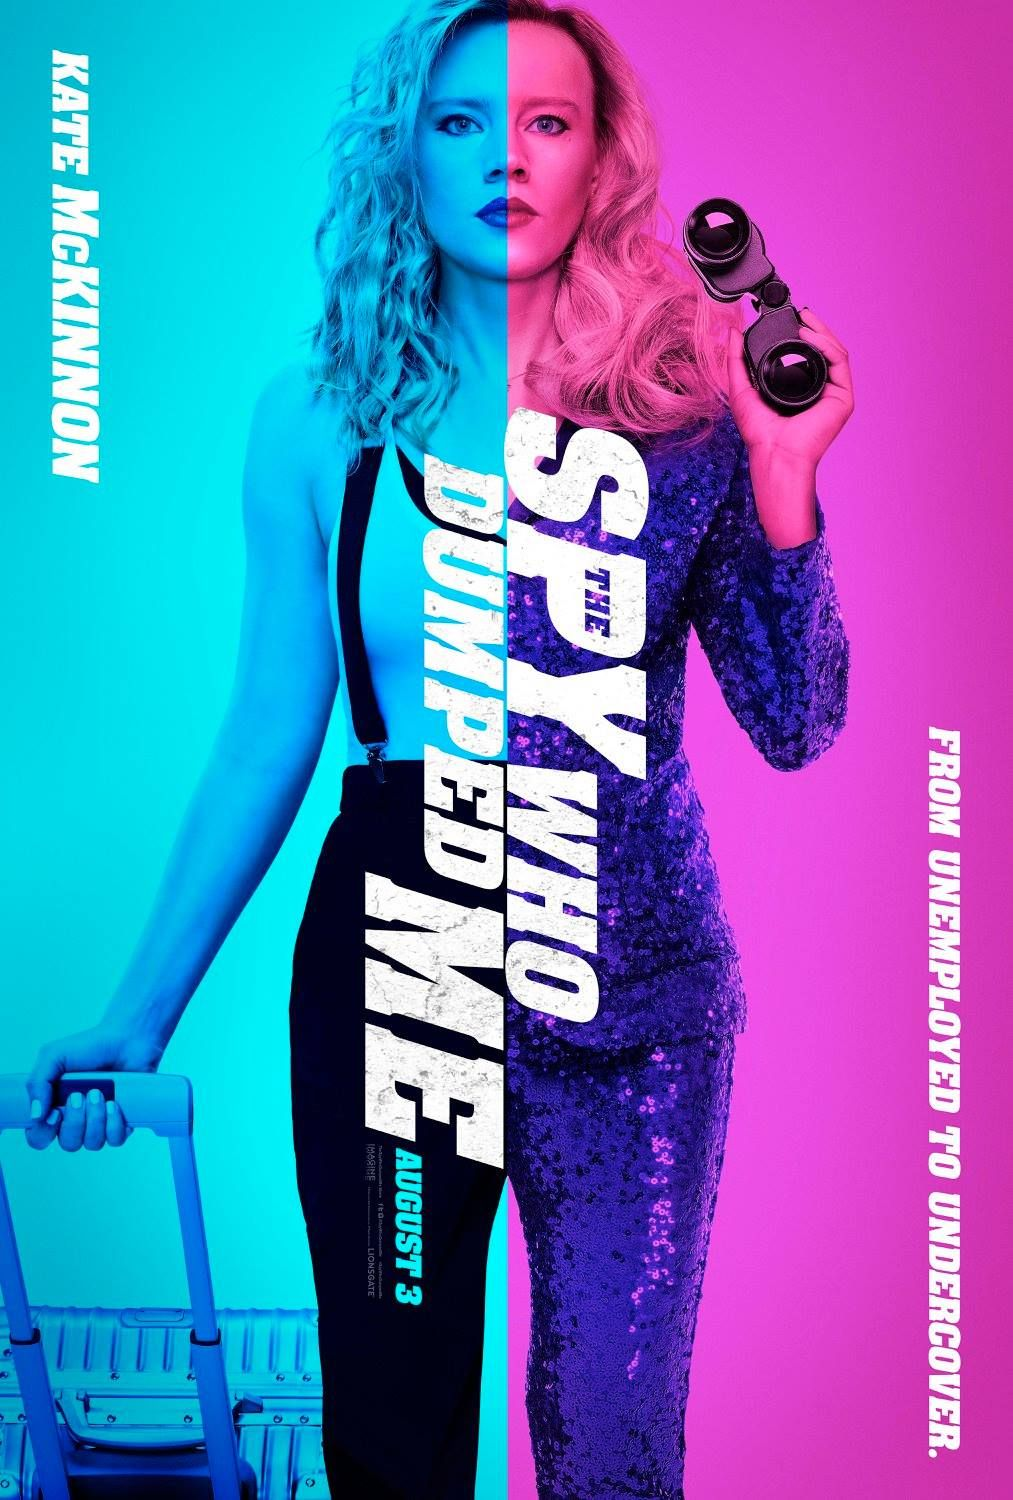 The Spy Who Dumped Me (2018) Full movies online free